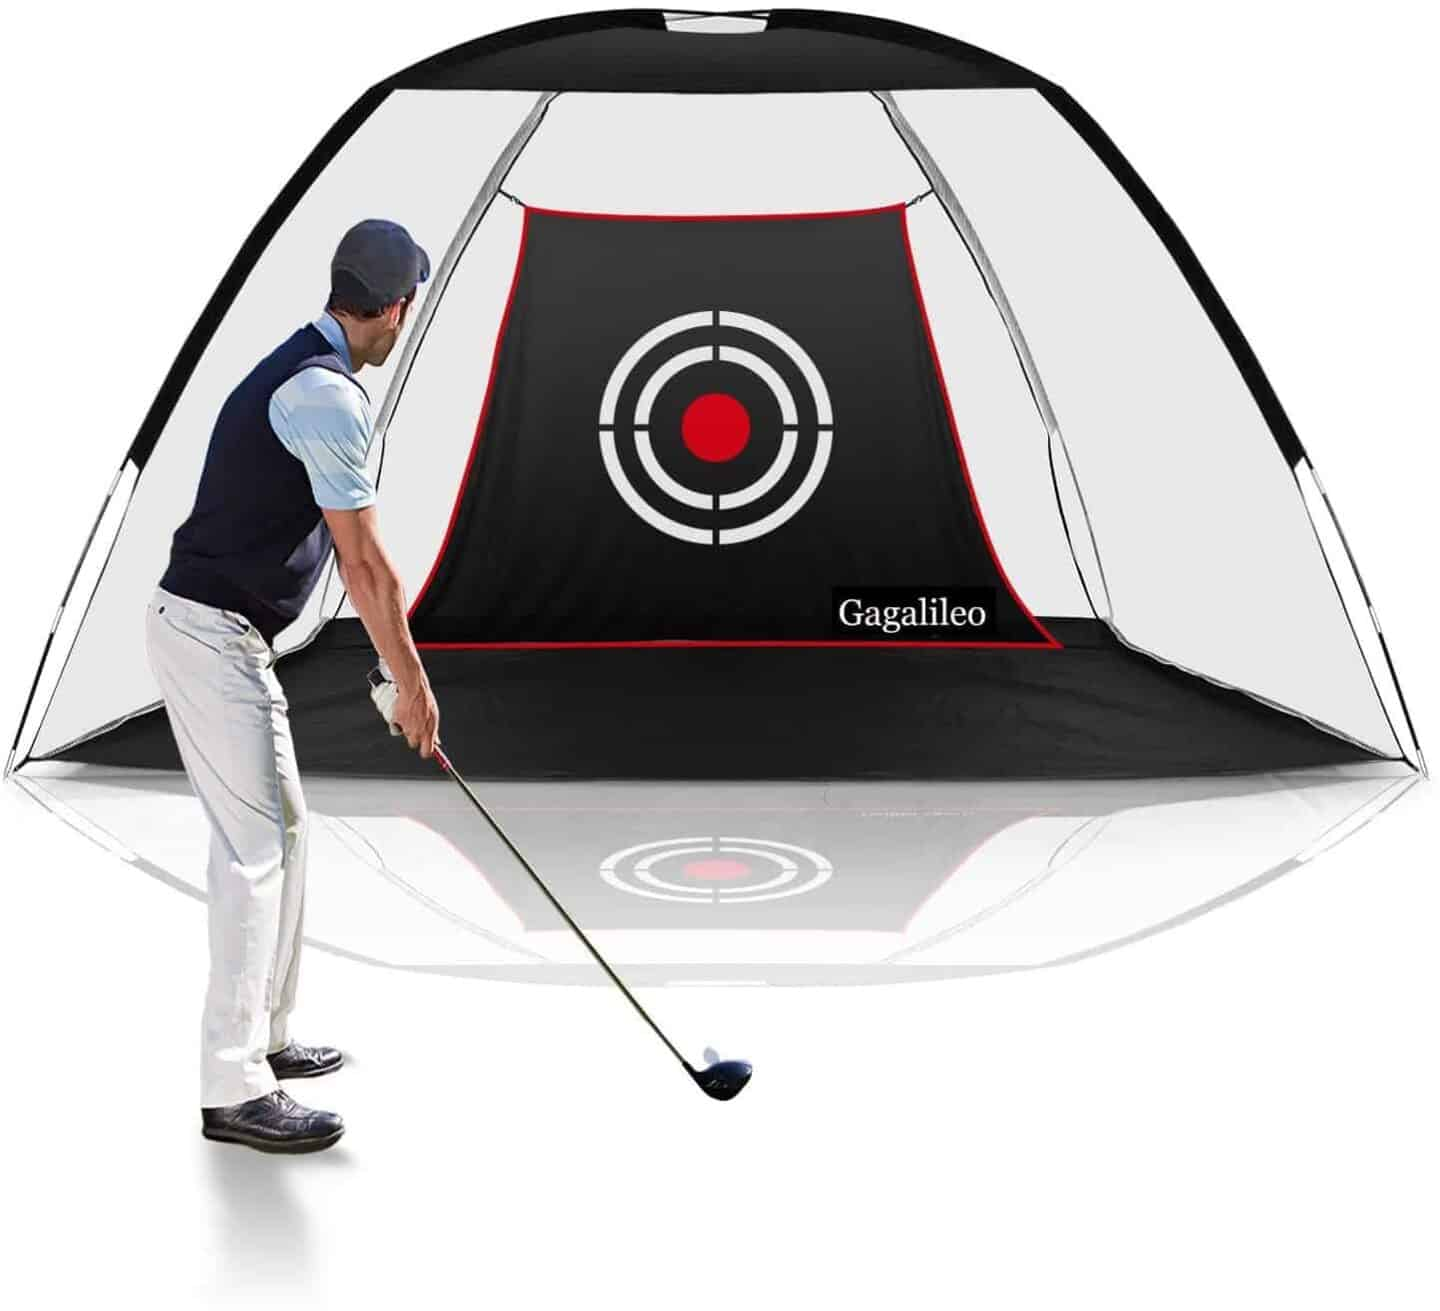 Backyard-Golf-Net-Fathers-Day-Gift-Ideas